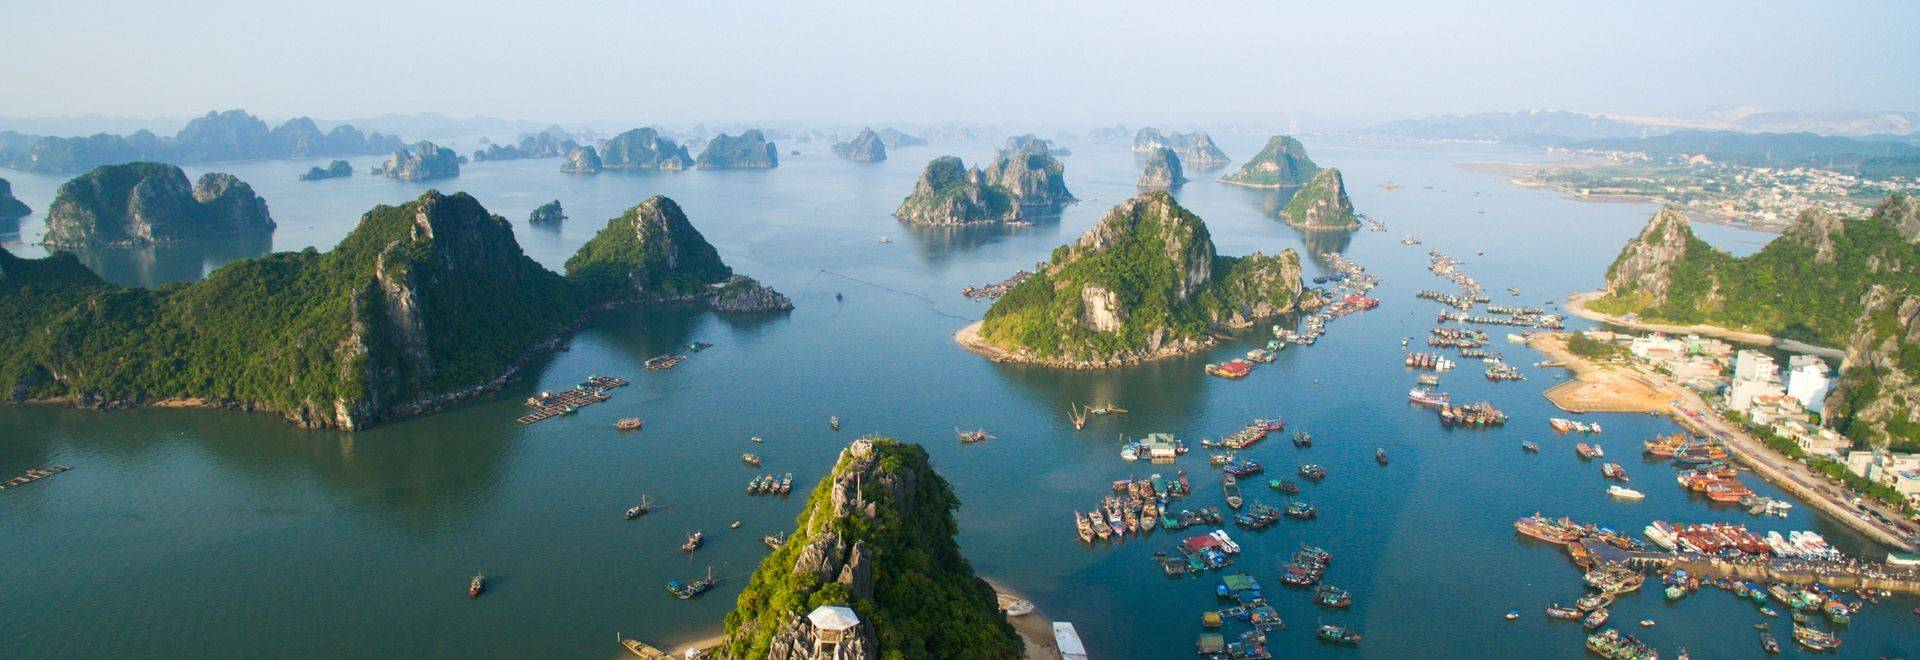 GettyImages 575361453 Beautiful Seascape In Halong Bay, Vietnam